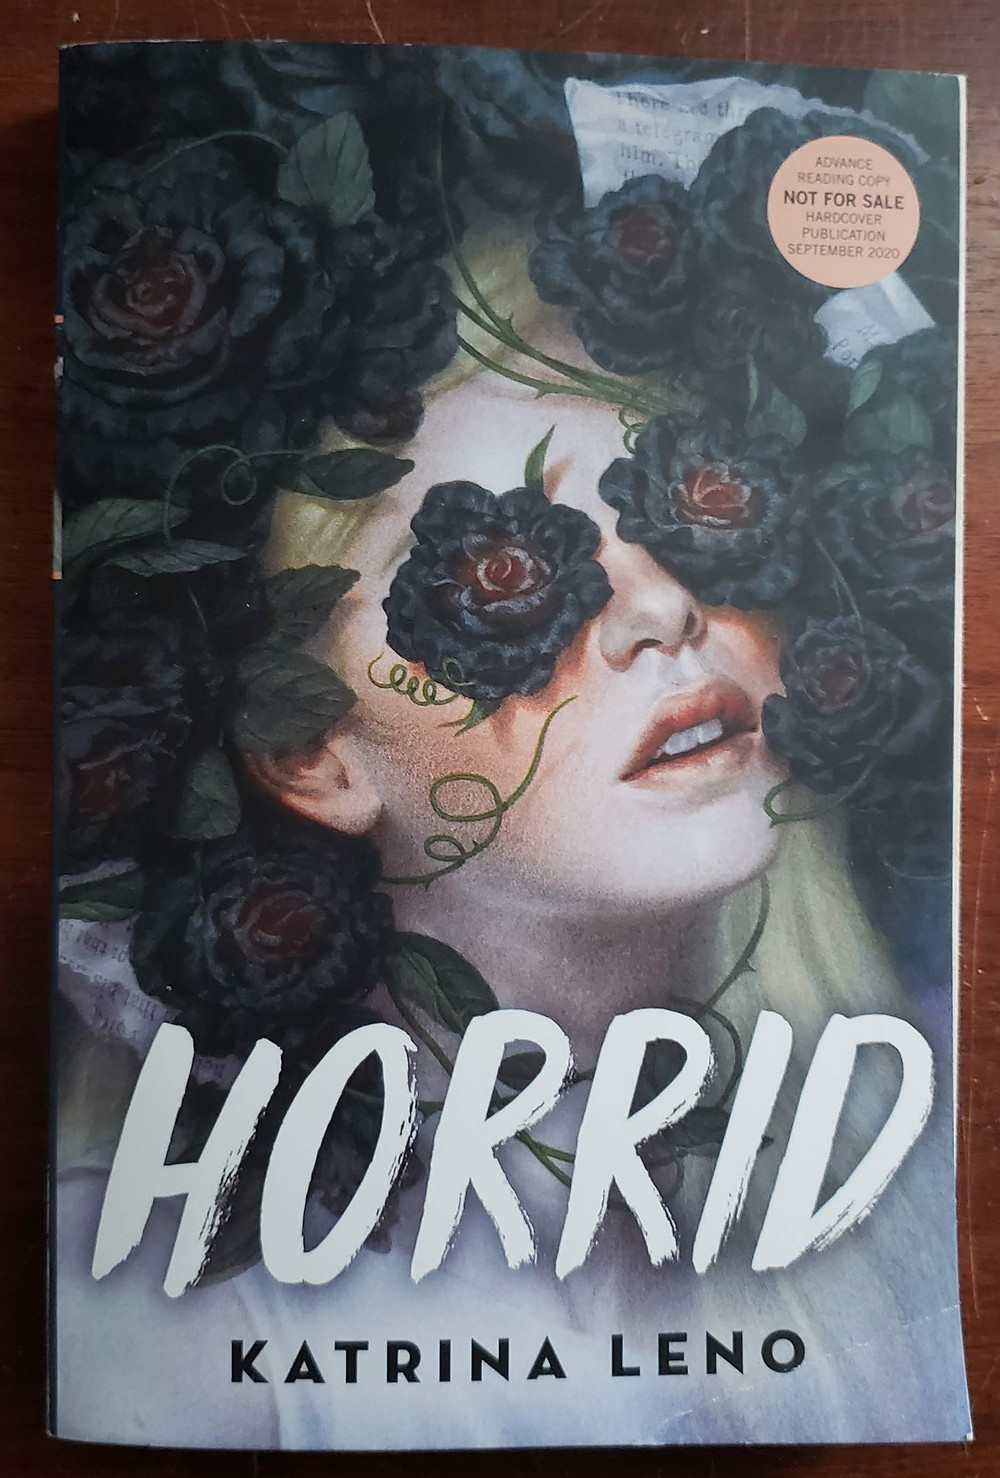 Front image of the book cover for Horrid by Katrina Leno.